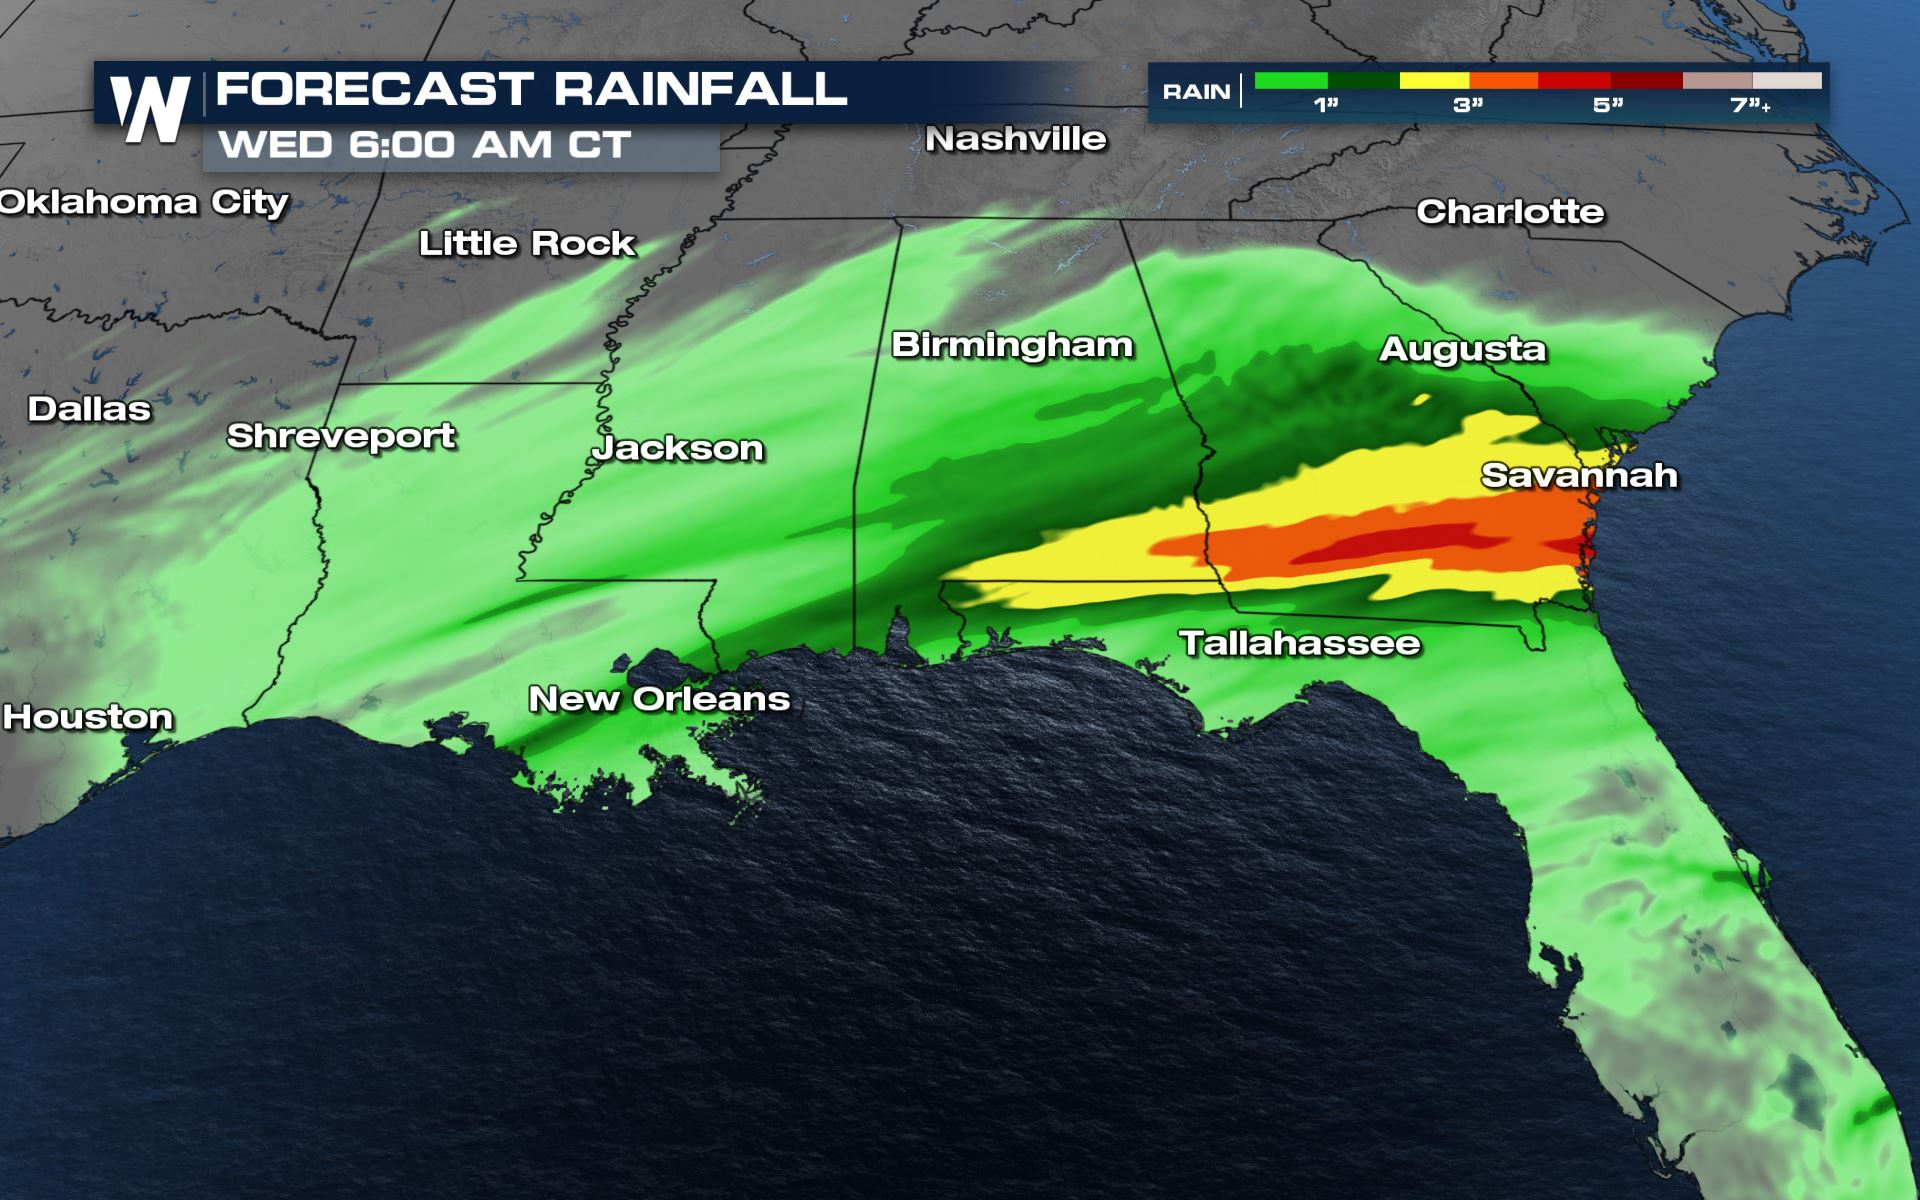 Heavy Rain Brings a Flooding Risk to the Southeast Tuesday and Wednesday